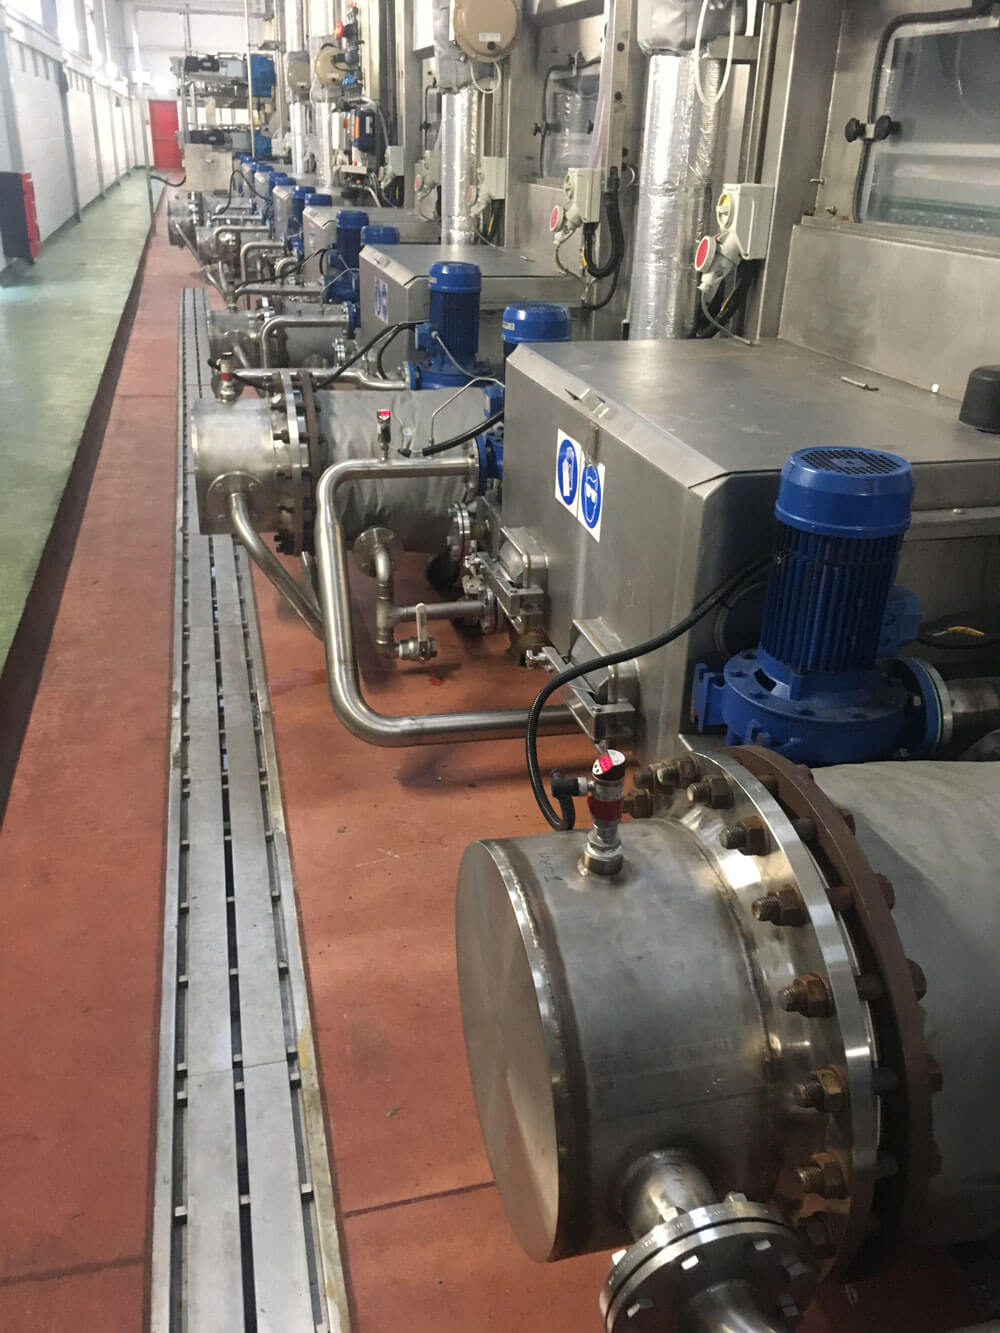 Heat Exchangers Repaired and Back in Use